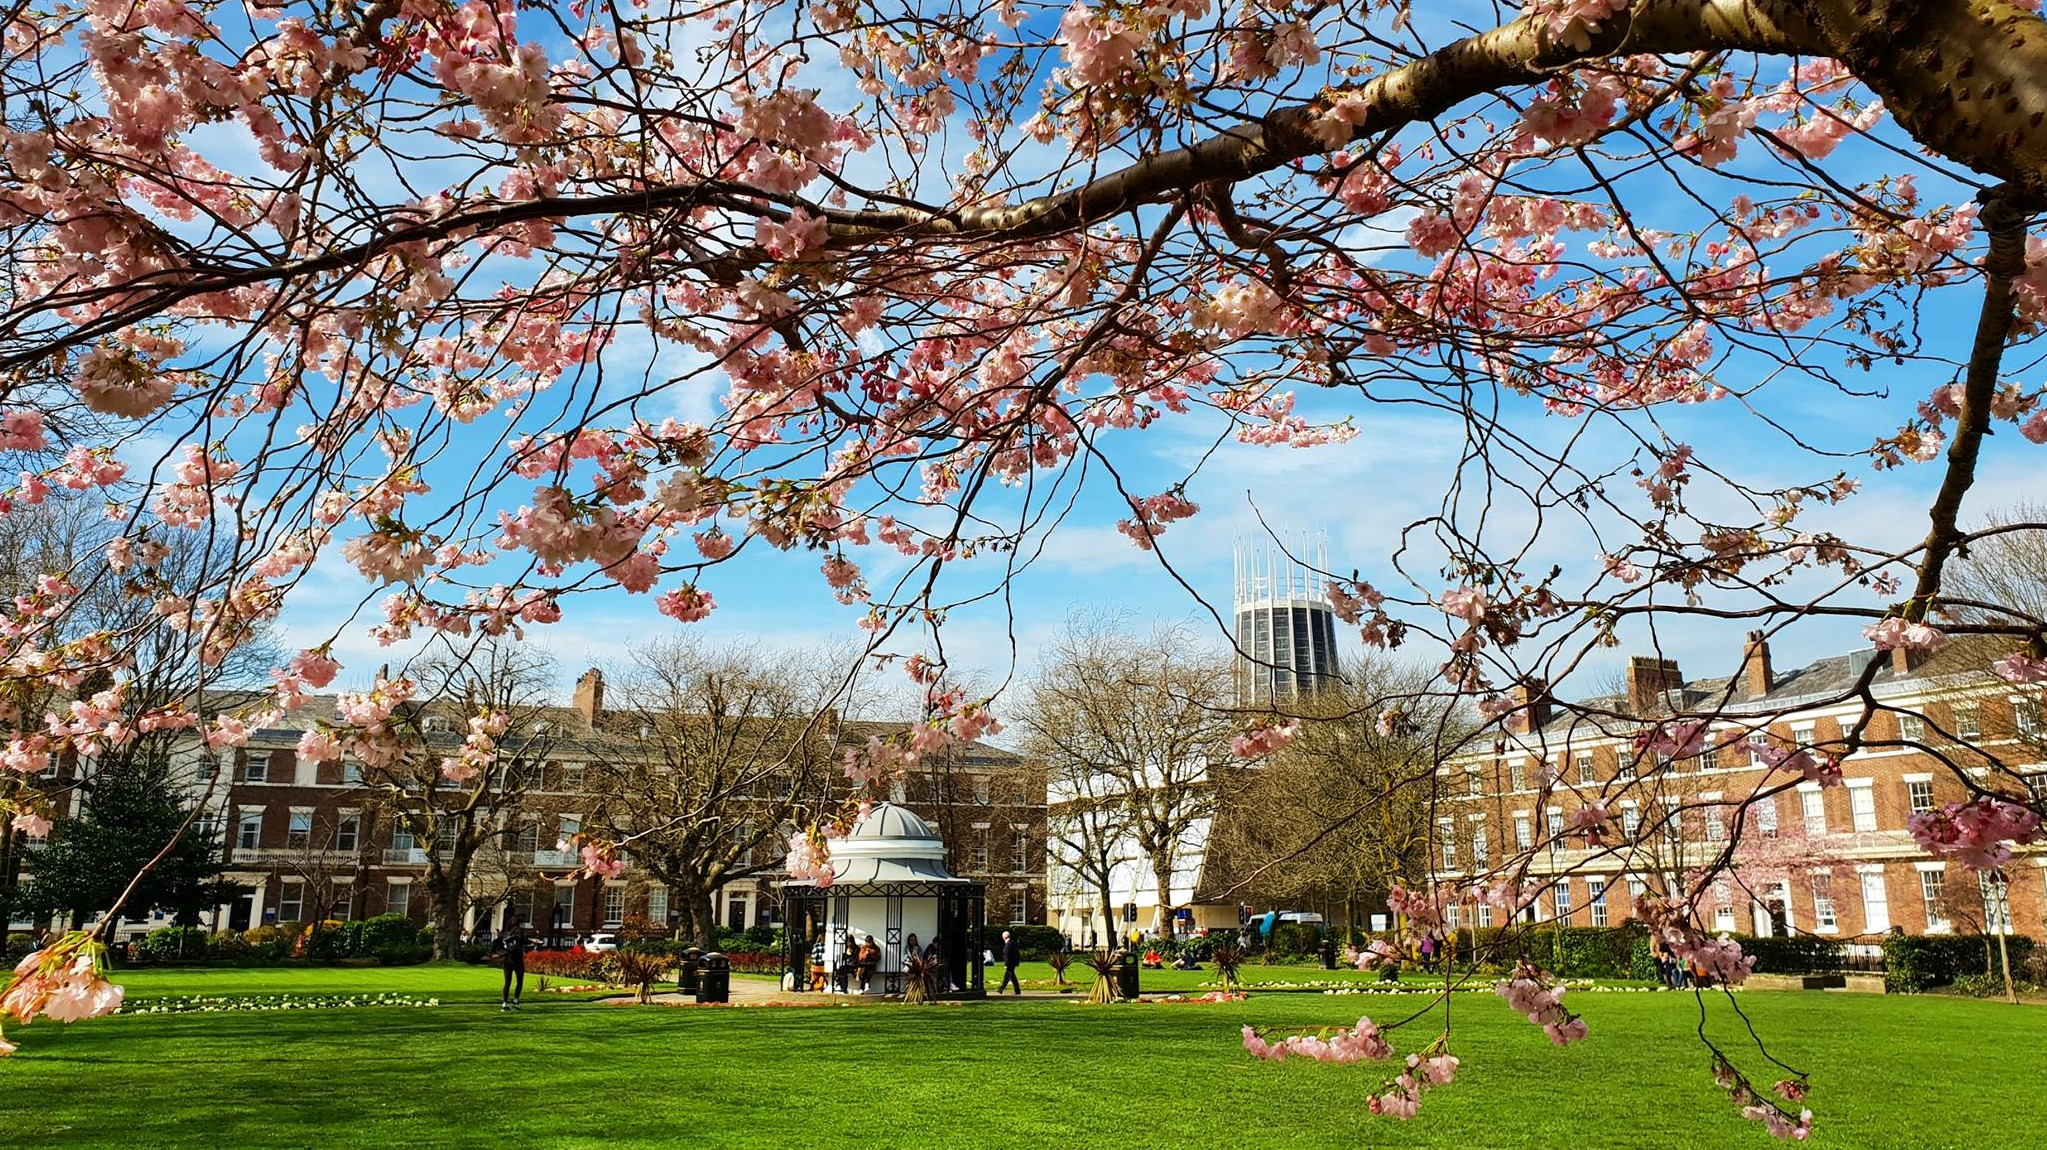 Get involved with University of Liverpool's Wellbeing Week